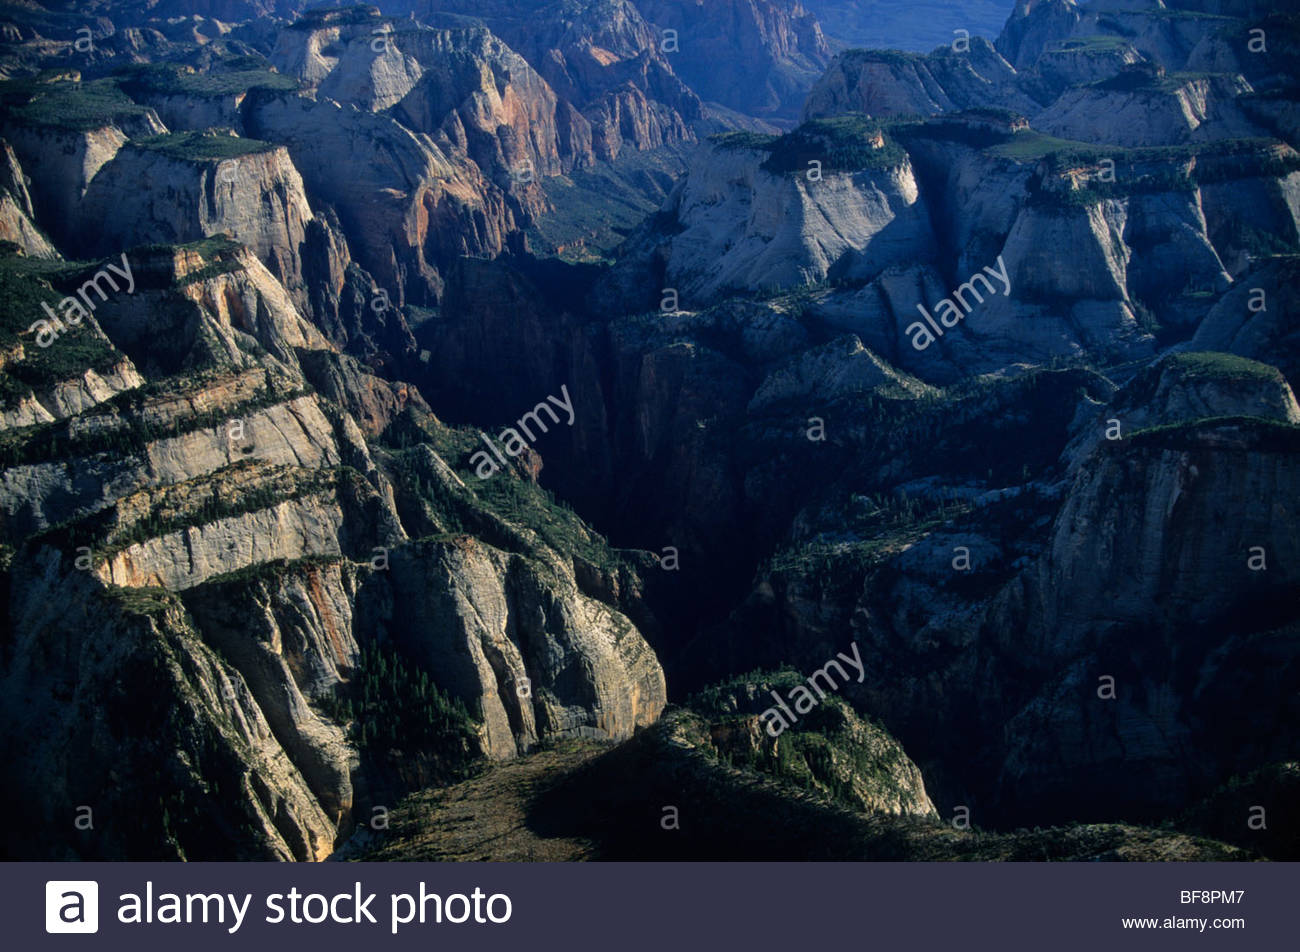 Mesas and canyons (aerial), Zion National Park, Utah Stock Photo